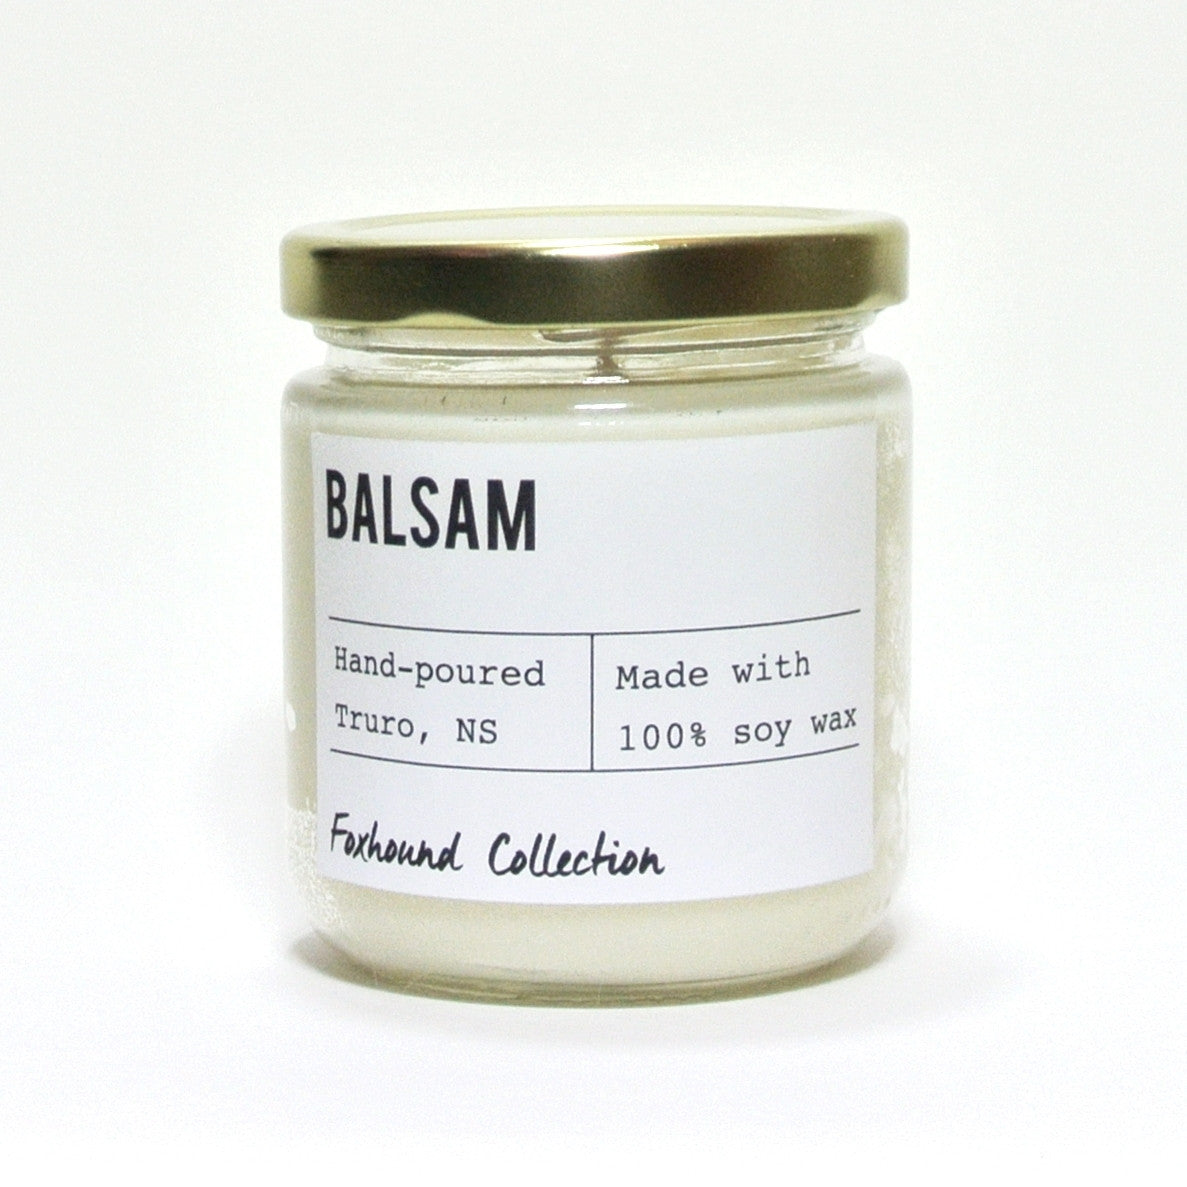 foxhound collection balsam soy candle